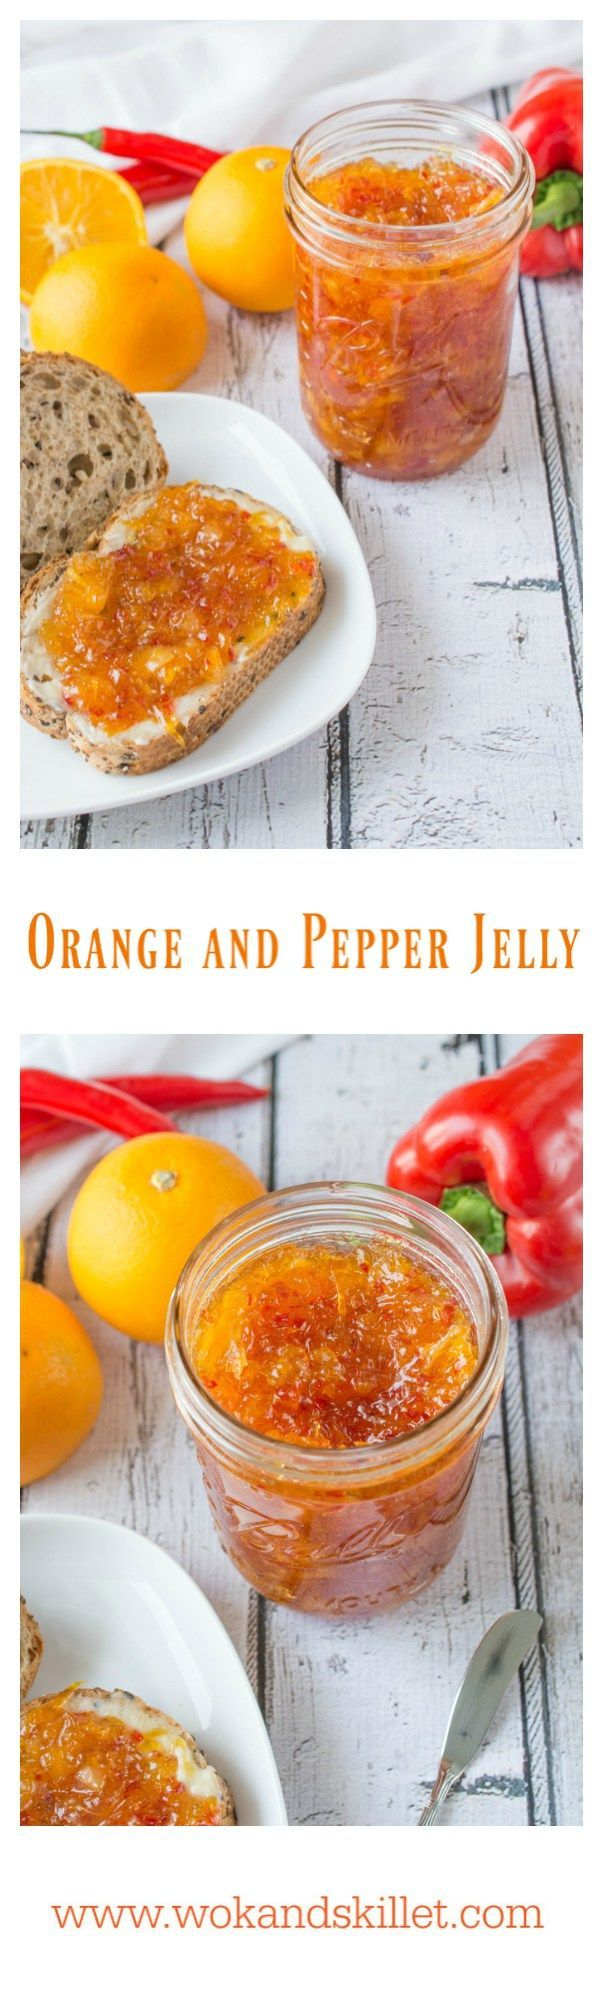 Orange and Pepper Jelly is a unique, tasty blend of orange marmalade with red…